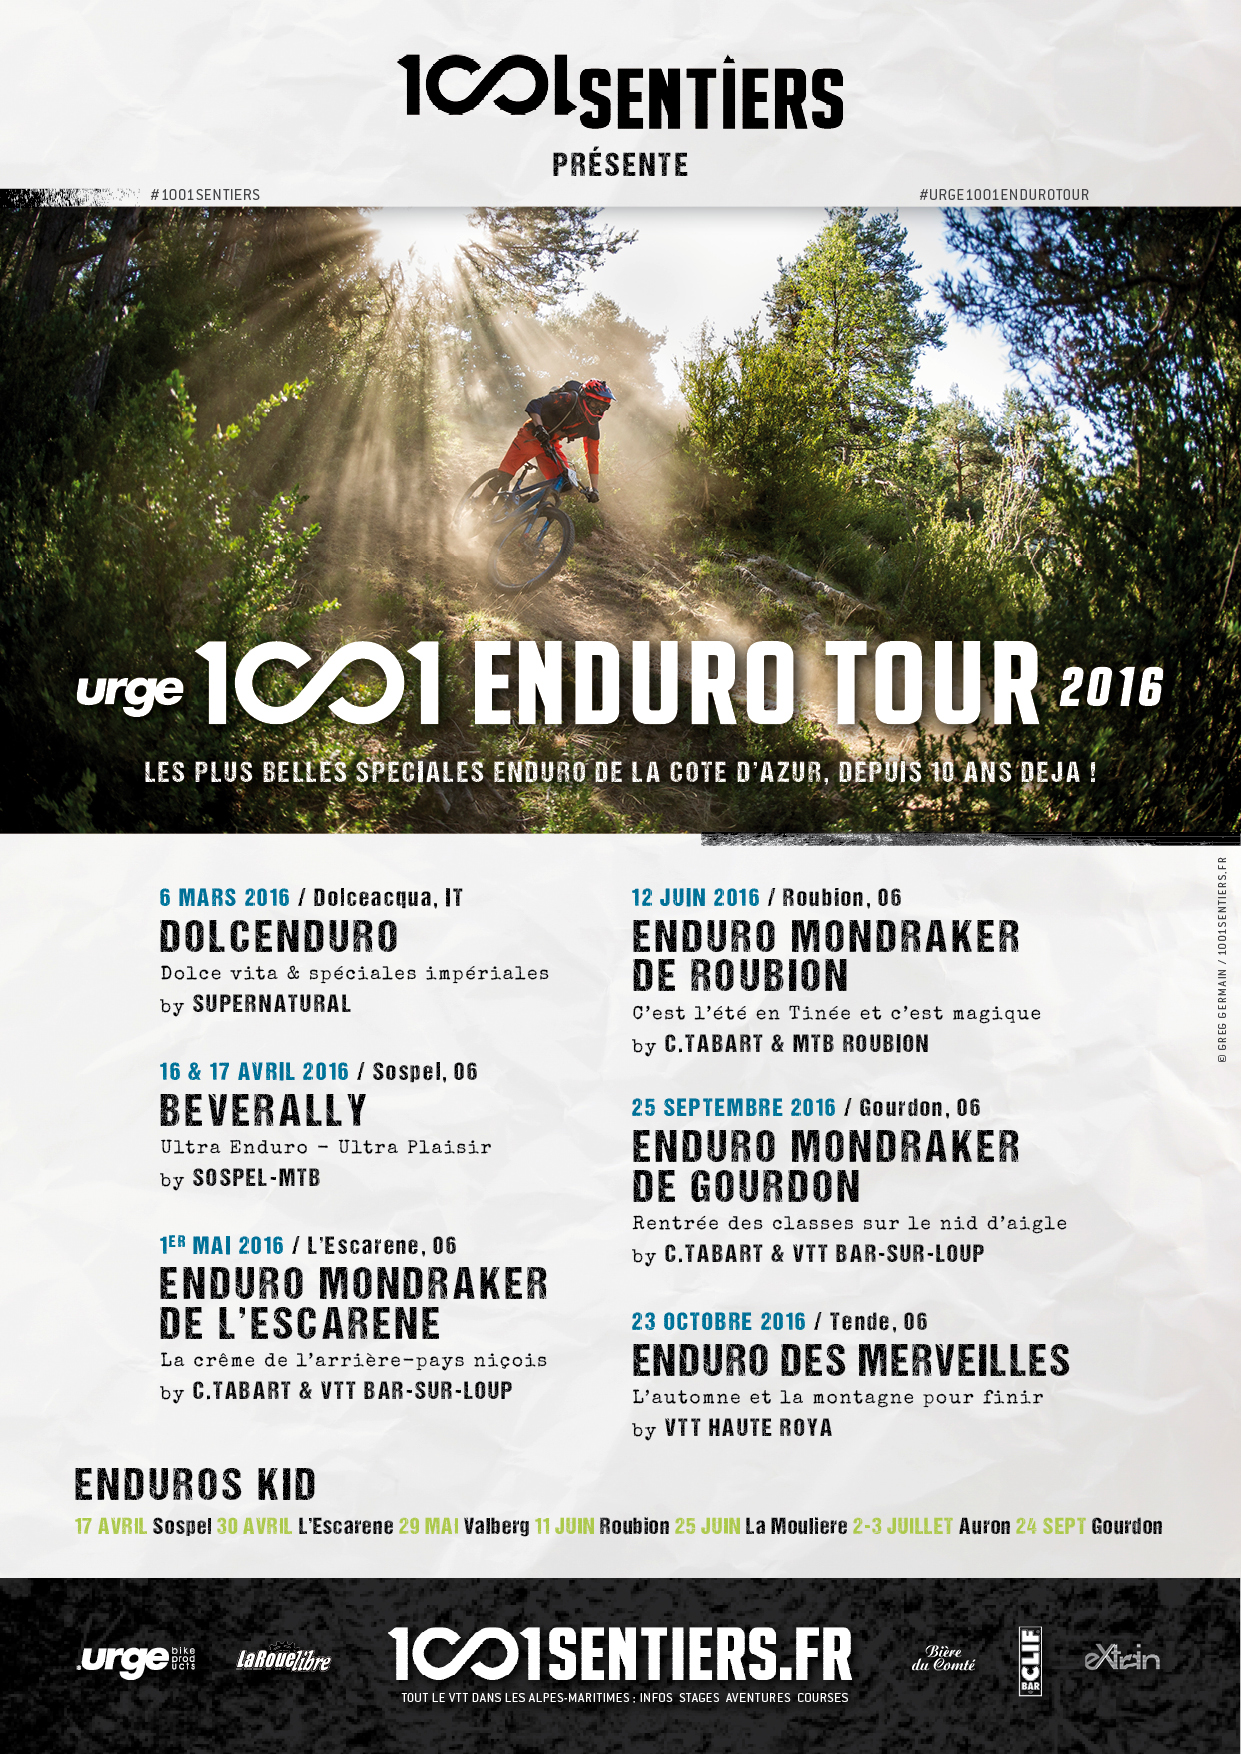 Affiche Urge 1001 Enduro Tour 2016 web